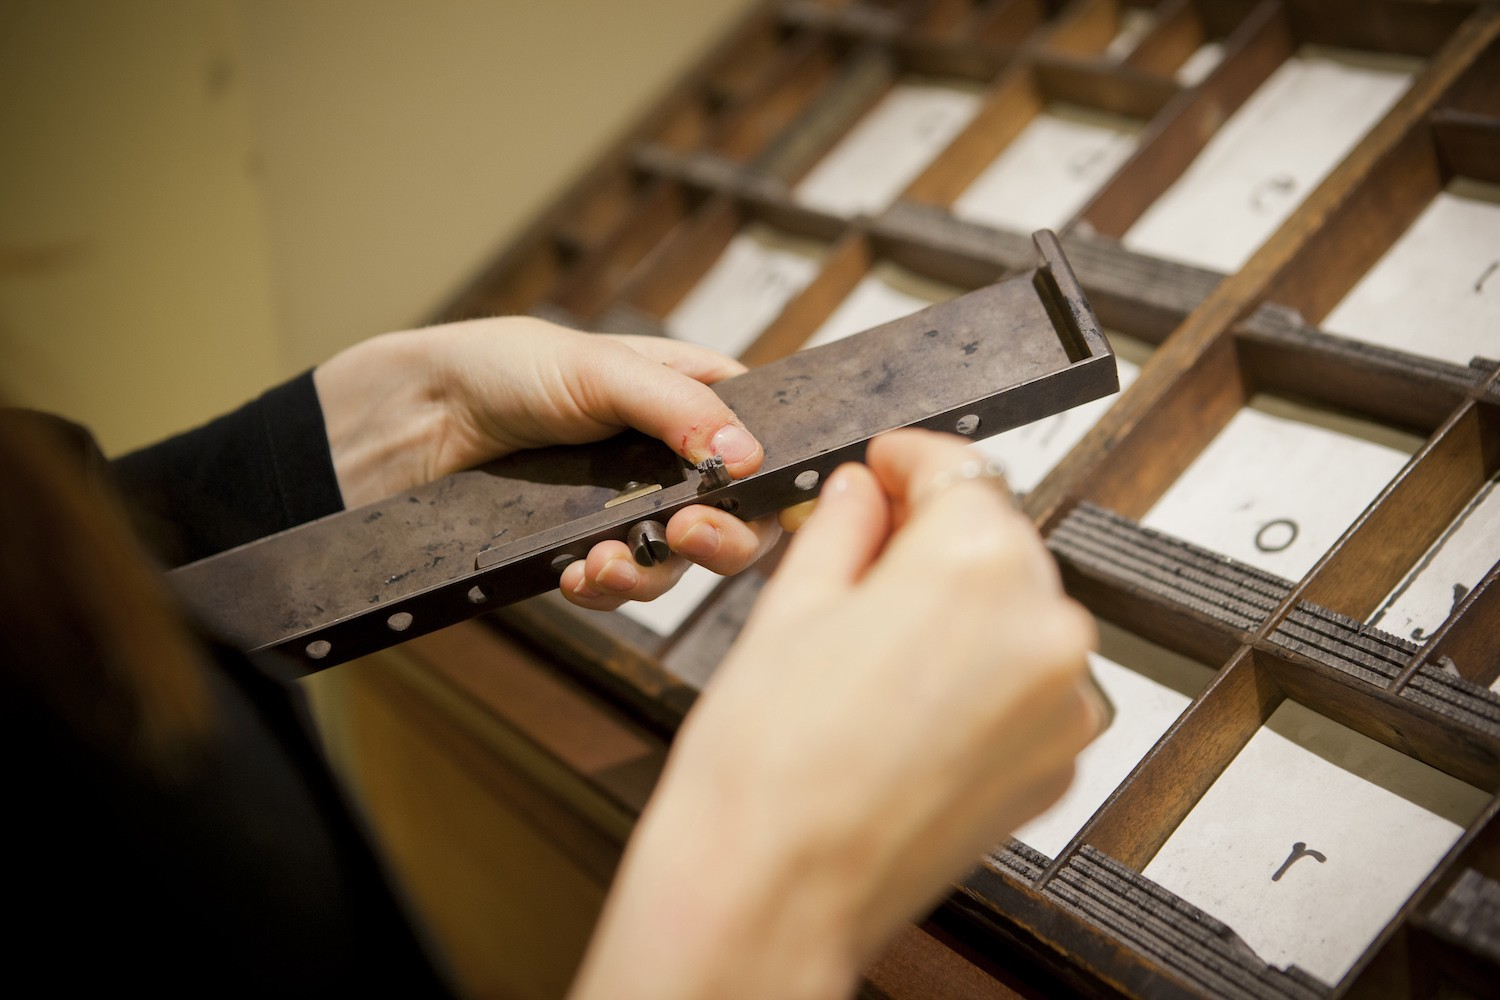 A woman putting letter pieces into a thin metal tray